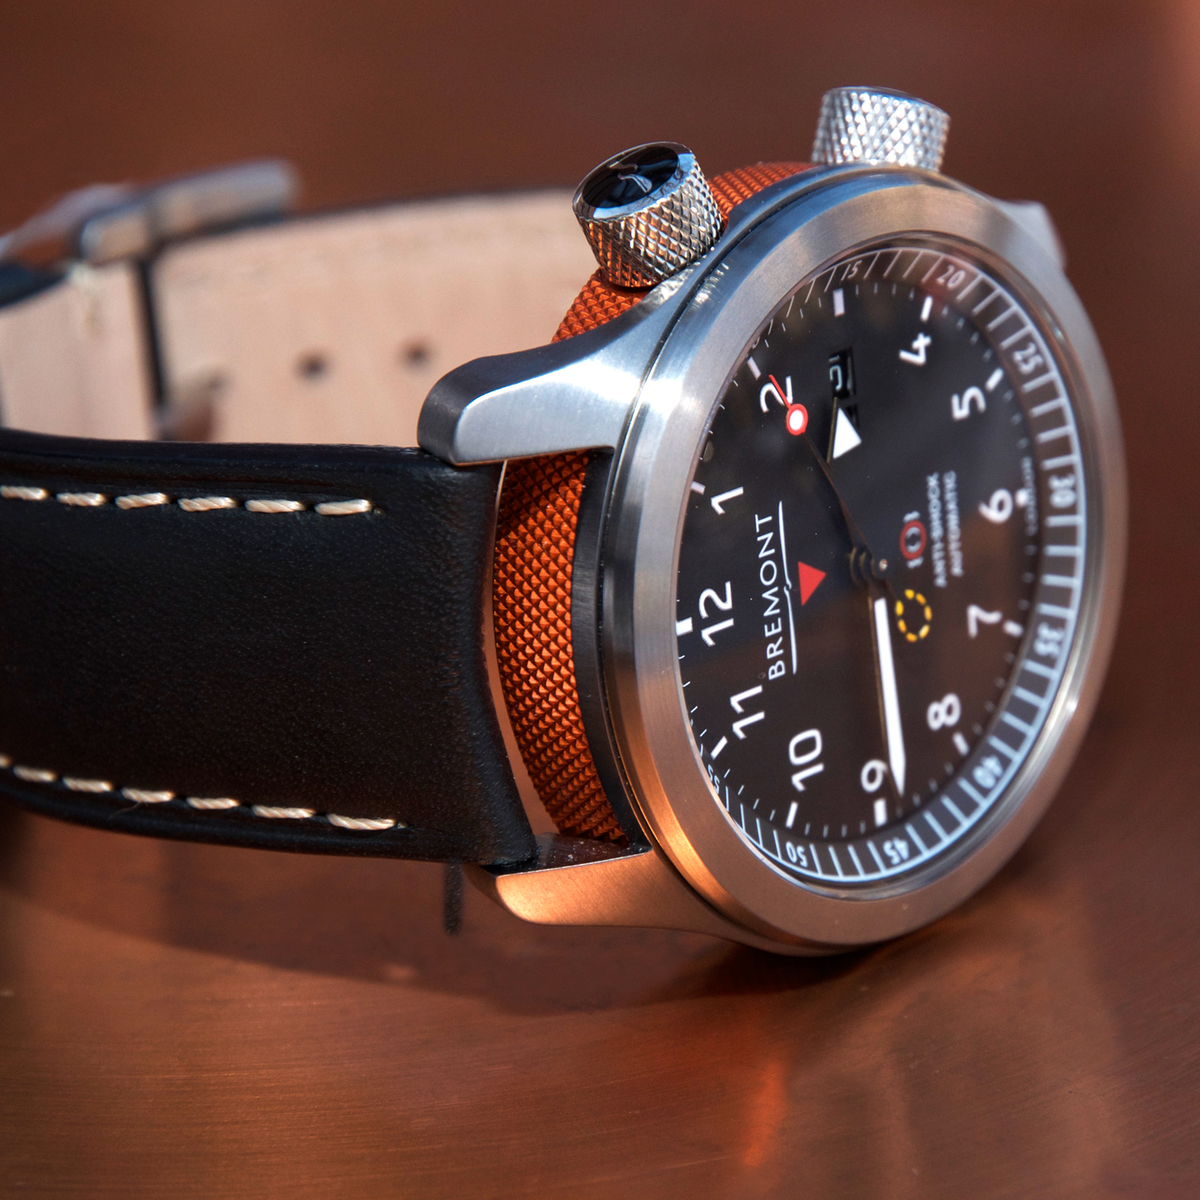 Bremont Summer Watch Event: Thursday, June 16th 12:30PM - 6:30PM